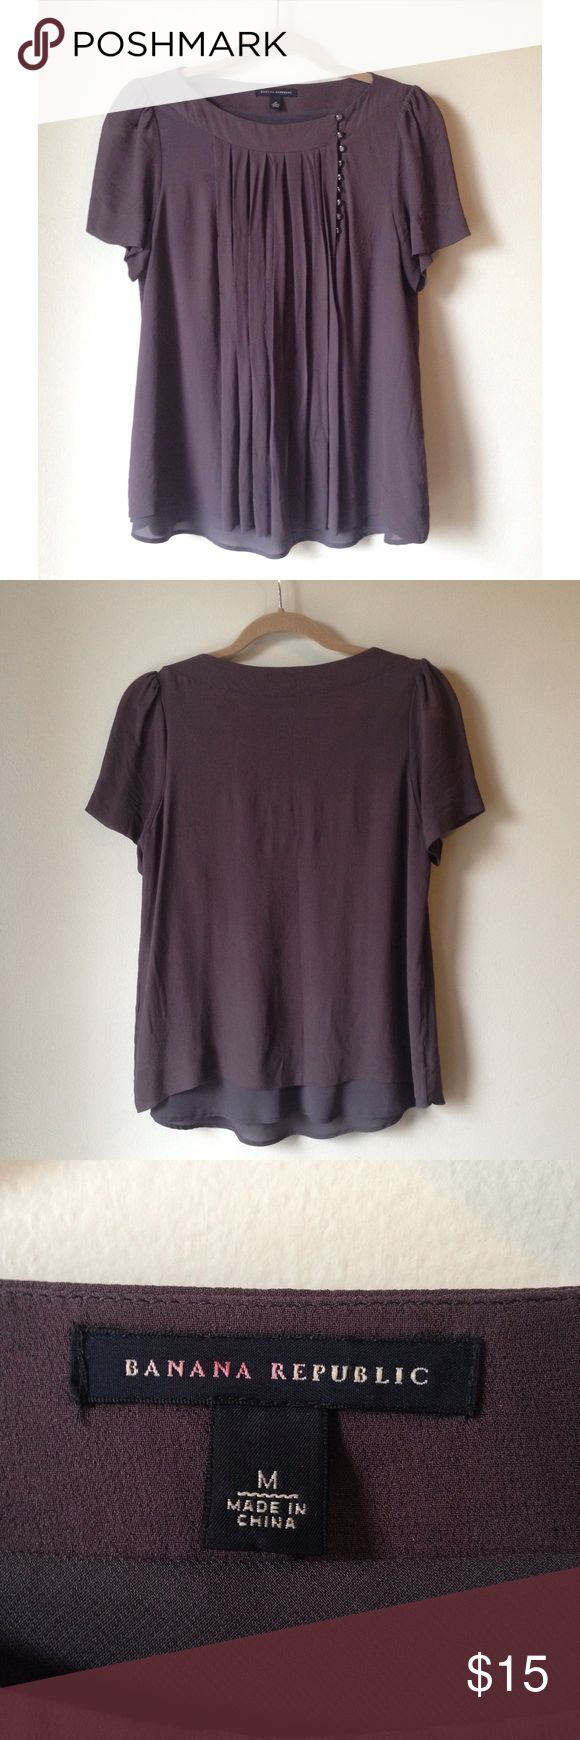 // 100% SILK BANANA REPUBLIC Pleated Silk Top // 100% Silk top by Banana Republic. This adorable flowy shirt has pleating and button details in front. Very cute short sleeves. Sheer material peeks out from the bottom.  Adorable top, can even be used as maternity top.   • Size Medium • Color is a grayish purple Banana Republic Tops Blouses